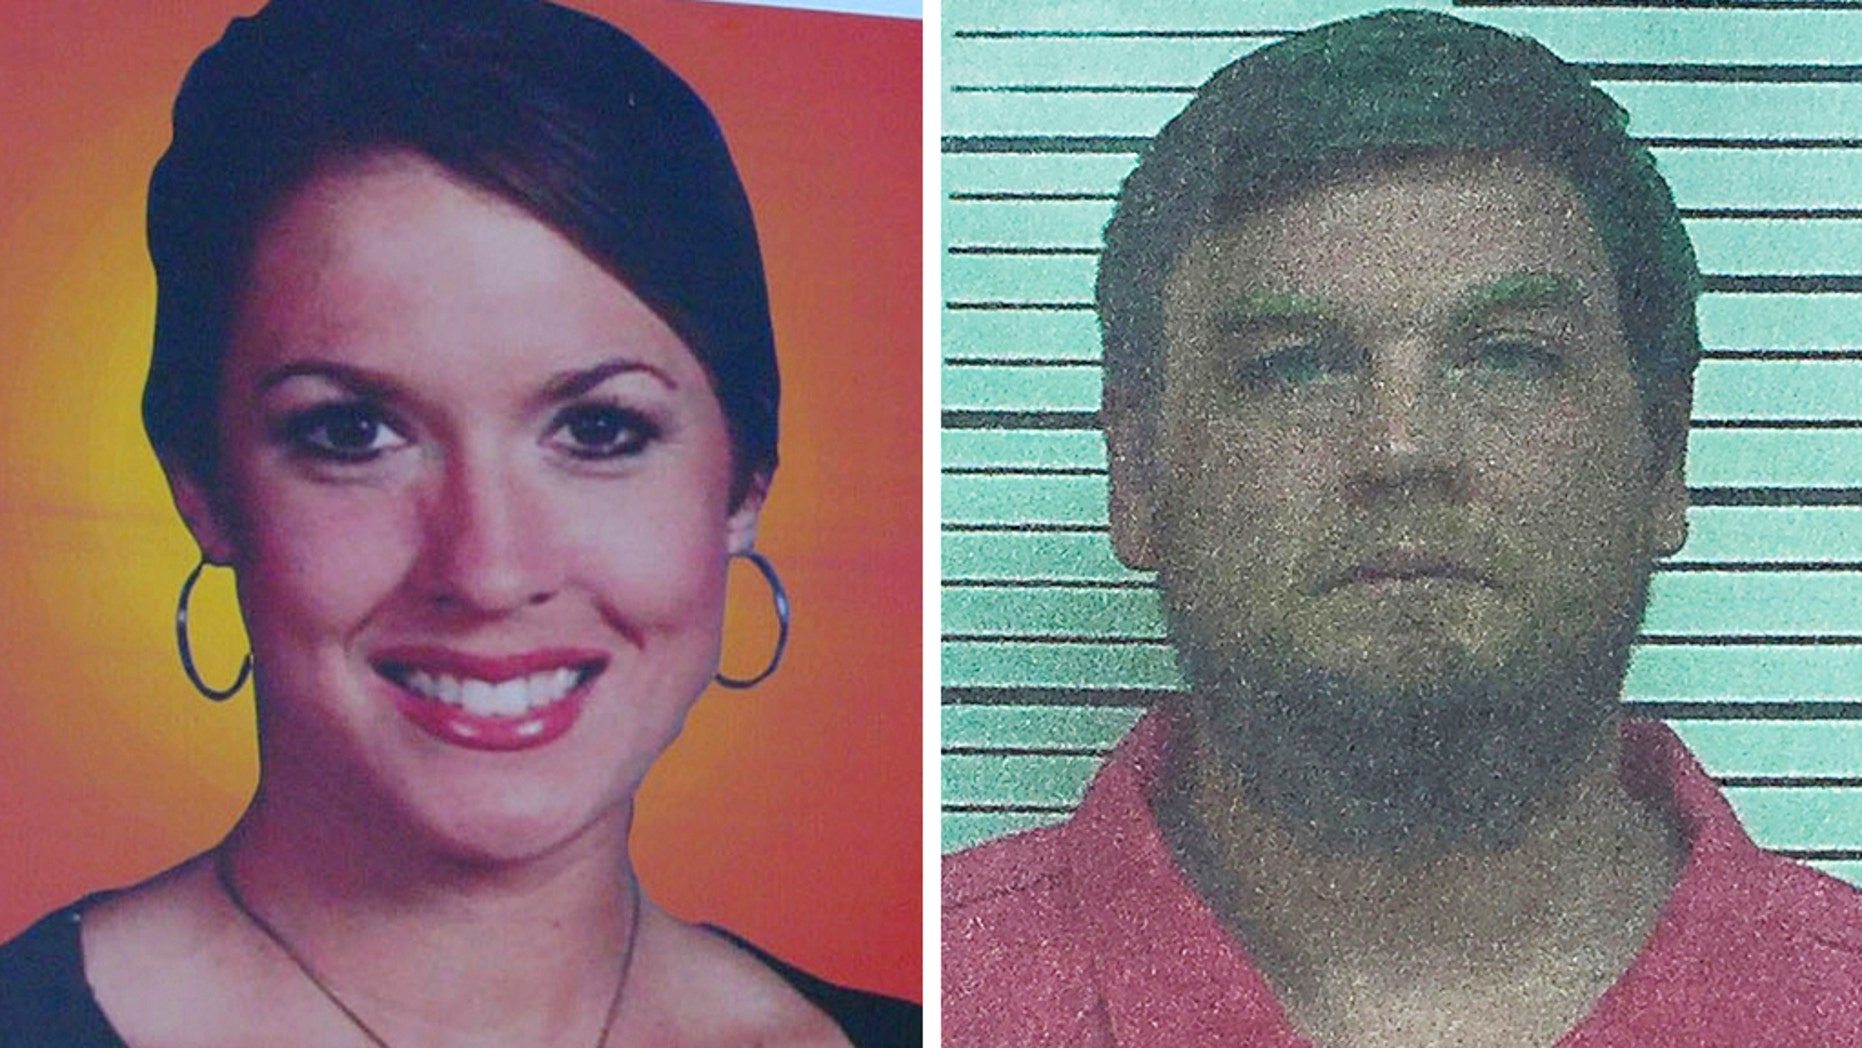 Bo Dukes, right, had been charged with helping dispose of the body of onetime beauty queen Tara Grinstead, who vanished from her home in the southwest Georgia town of Ocilla in 2005. He is being sought on rape charges from New Year's Day. (AP)